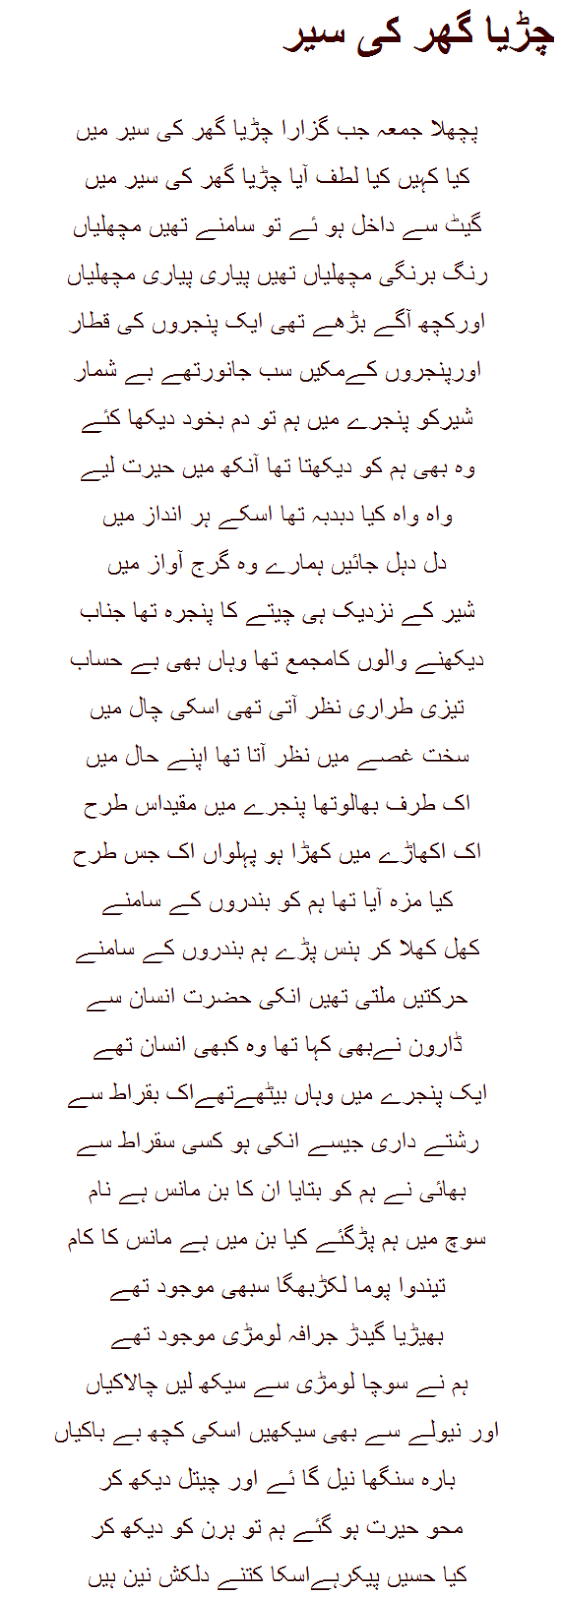 008 Women Empowerment Essay Zoo20shayari20in20urdu Exceptional Pdf Gender Equality And Women's Full